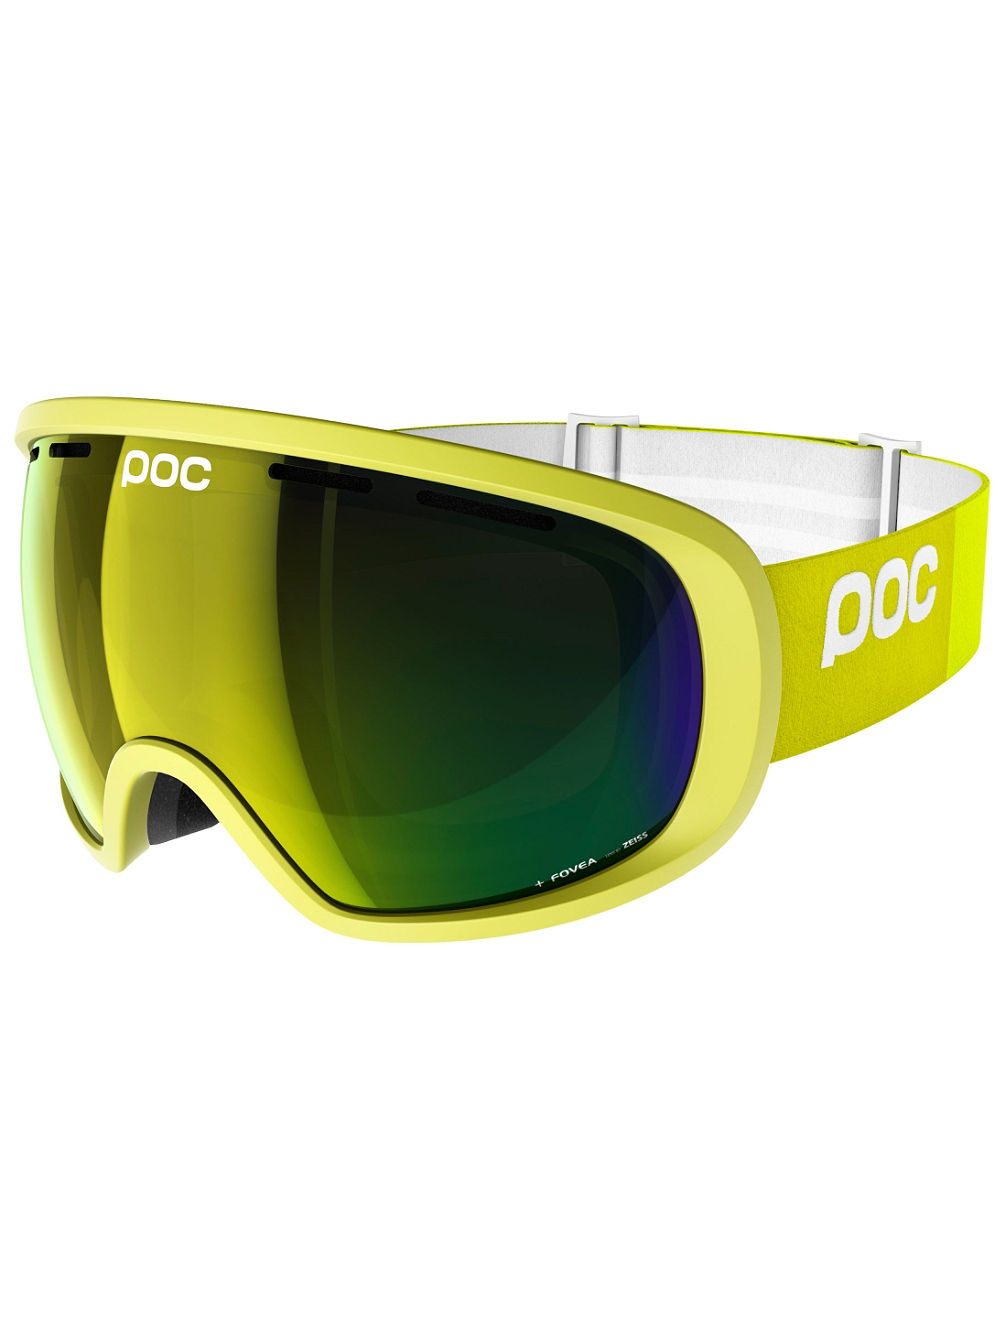 Fovea Hexane Yellow Goggle